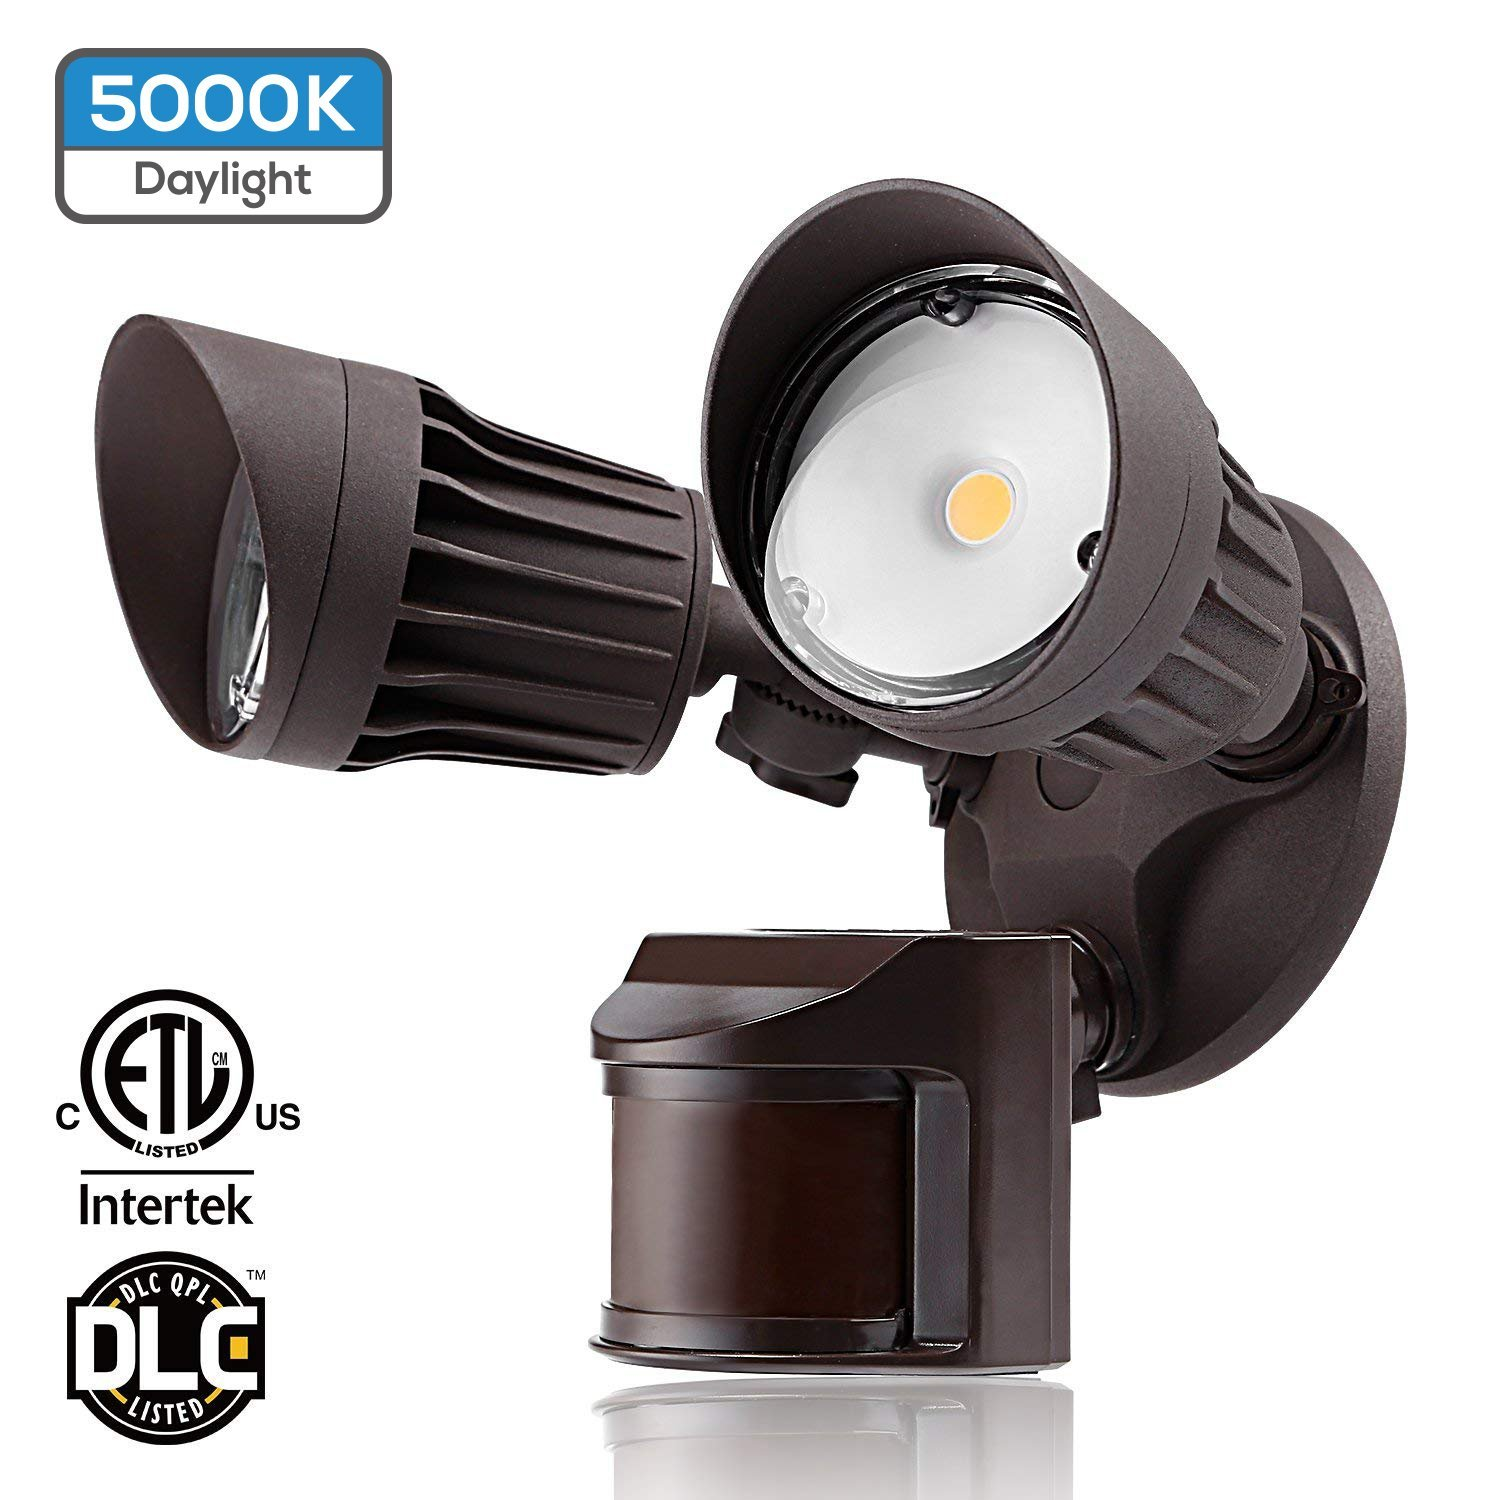 Dual-Head Motion Activated LED Outdoor Security Light, 20W (120W Equivalent), 3 Work Modes with Photo Sensor, 1600Lm Floodlight for Porch, Stairs, 5000K Daylight, Bronze